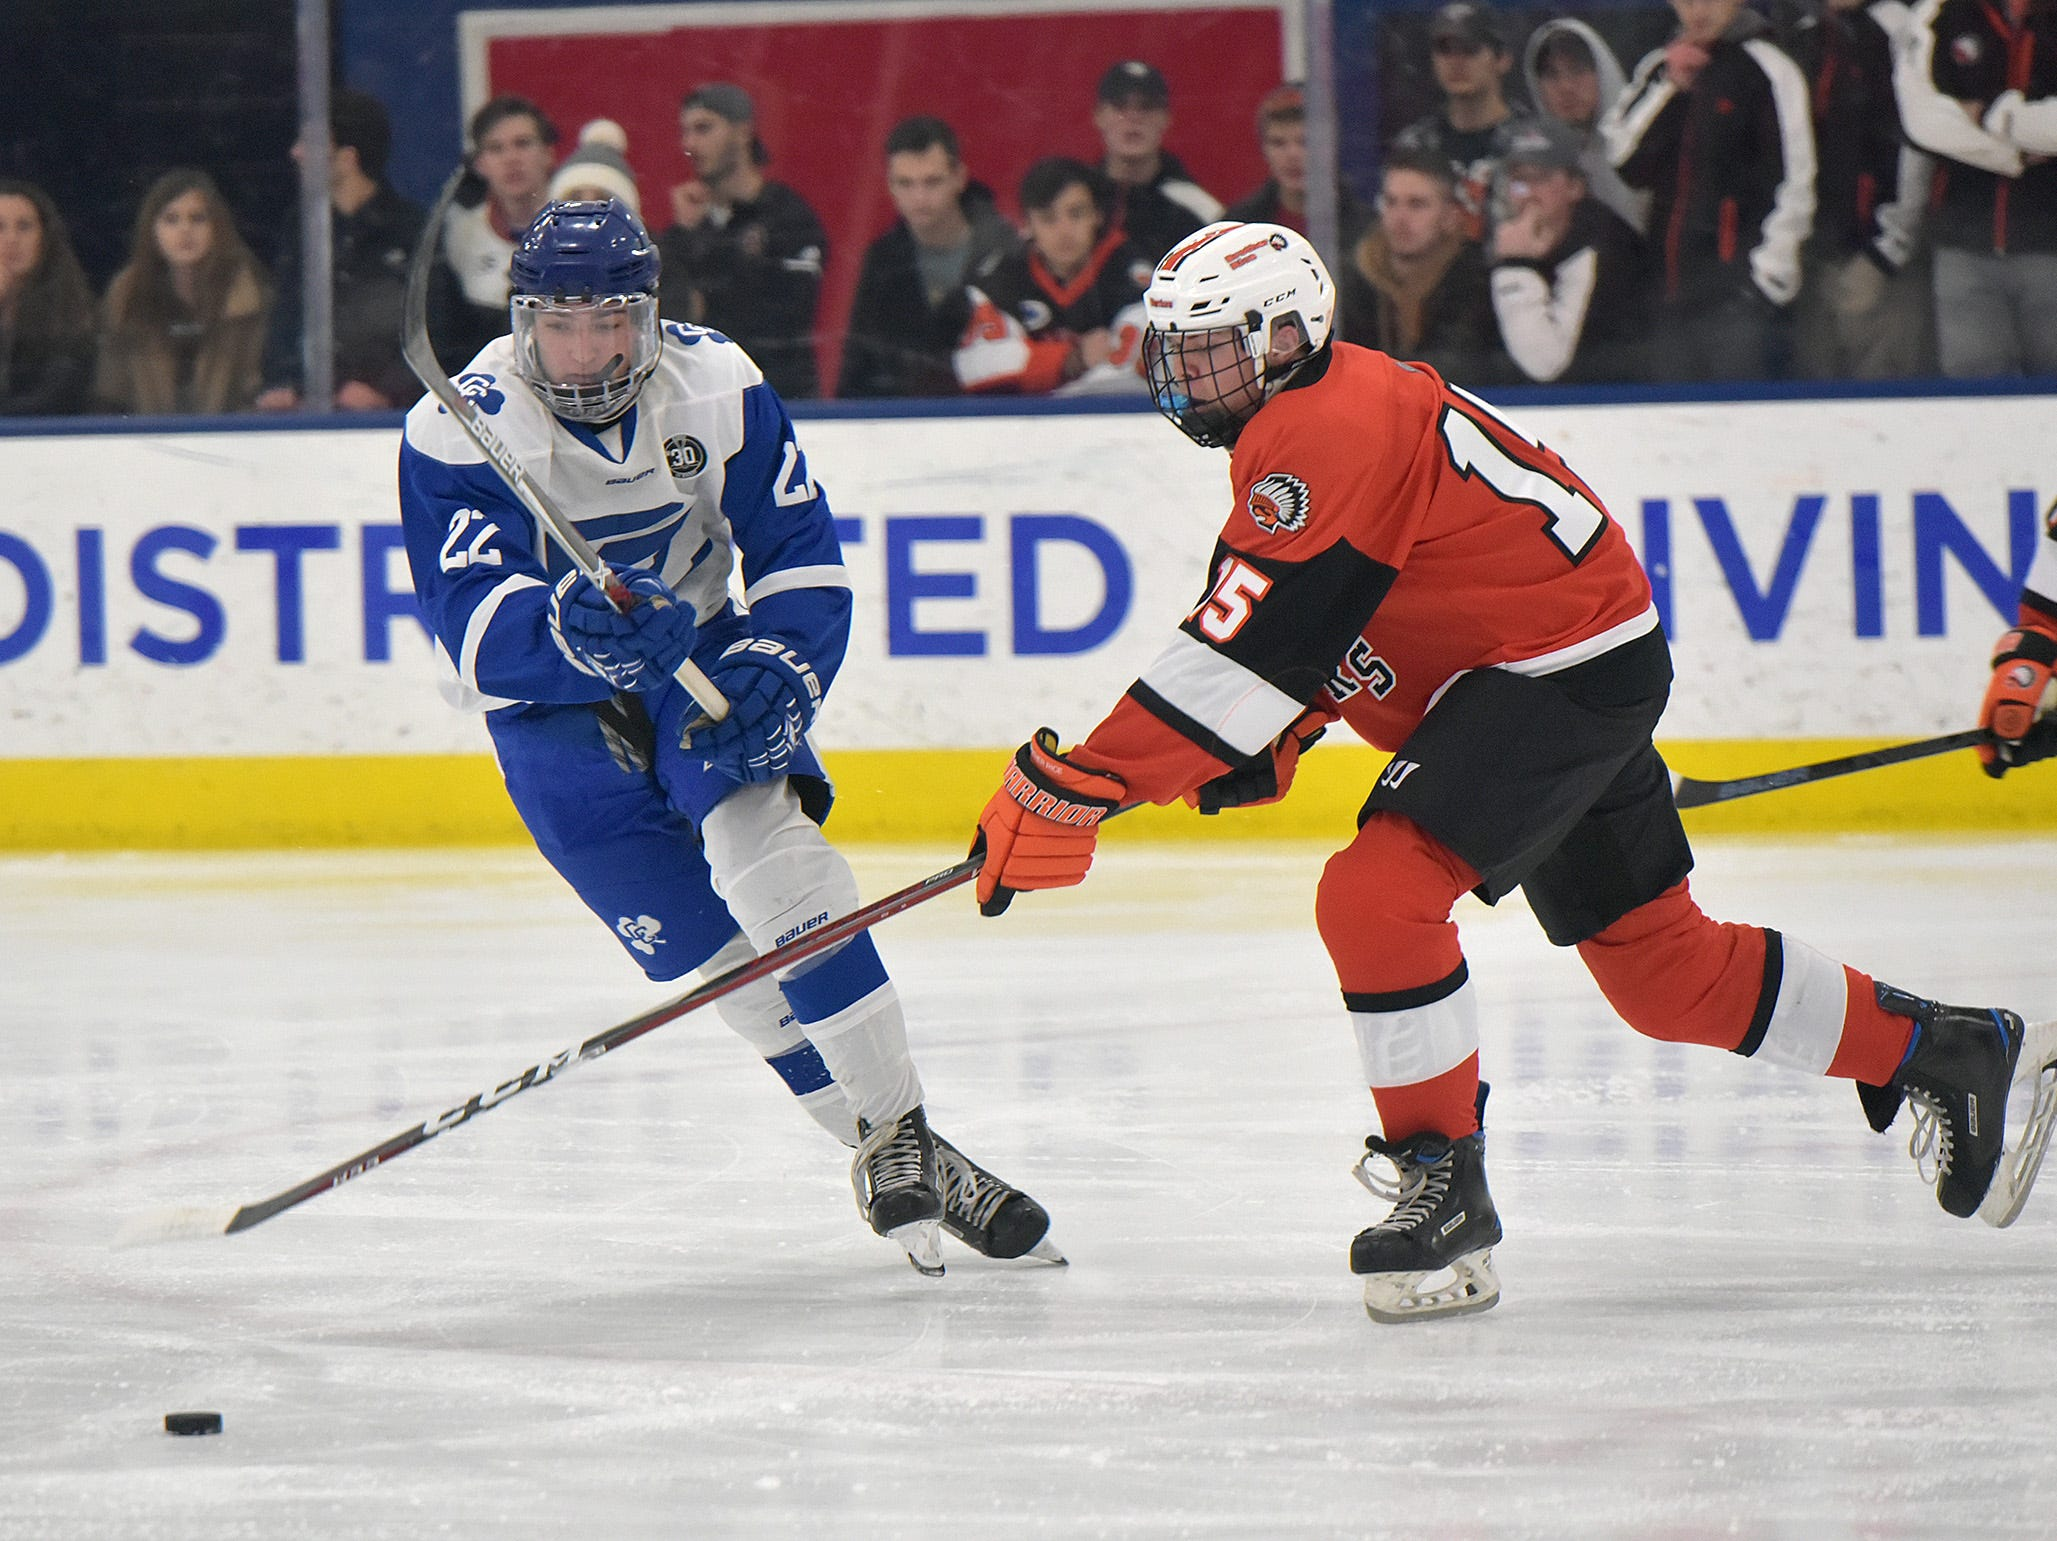 Brother Rice Nick Dippre (15) slips the puck past CC's Ryan Pearson (22).